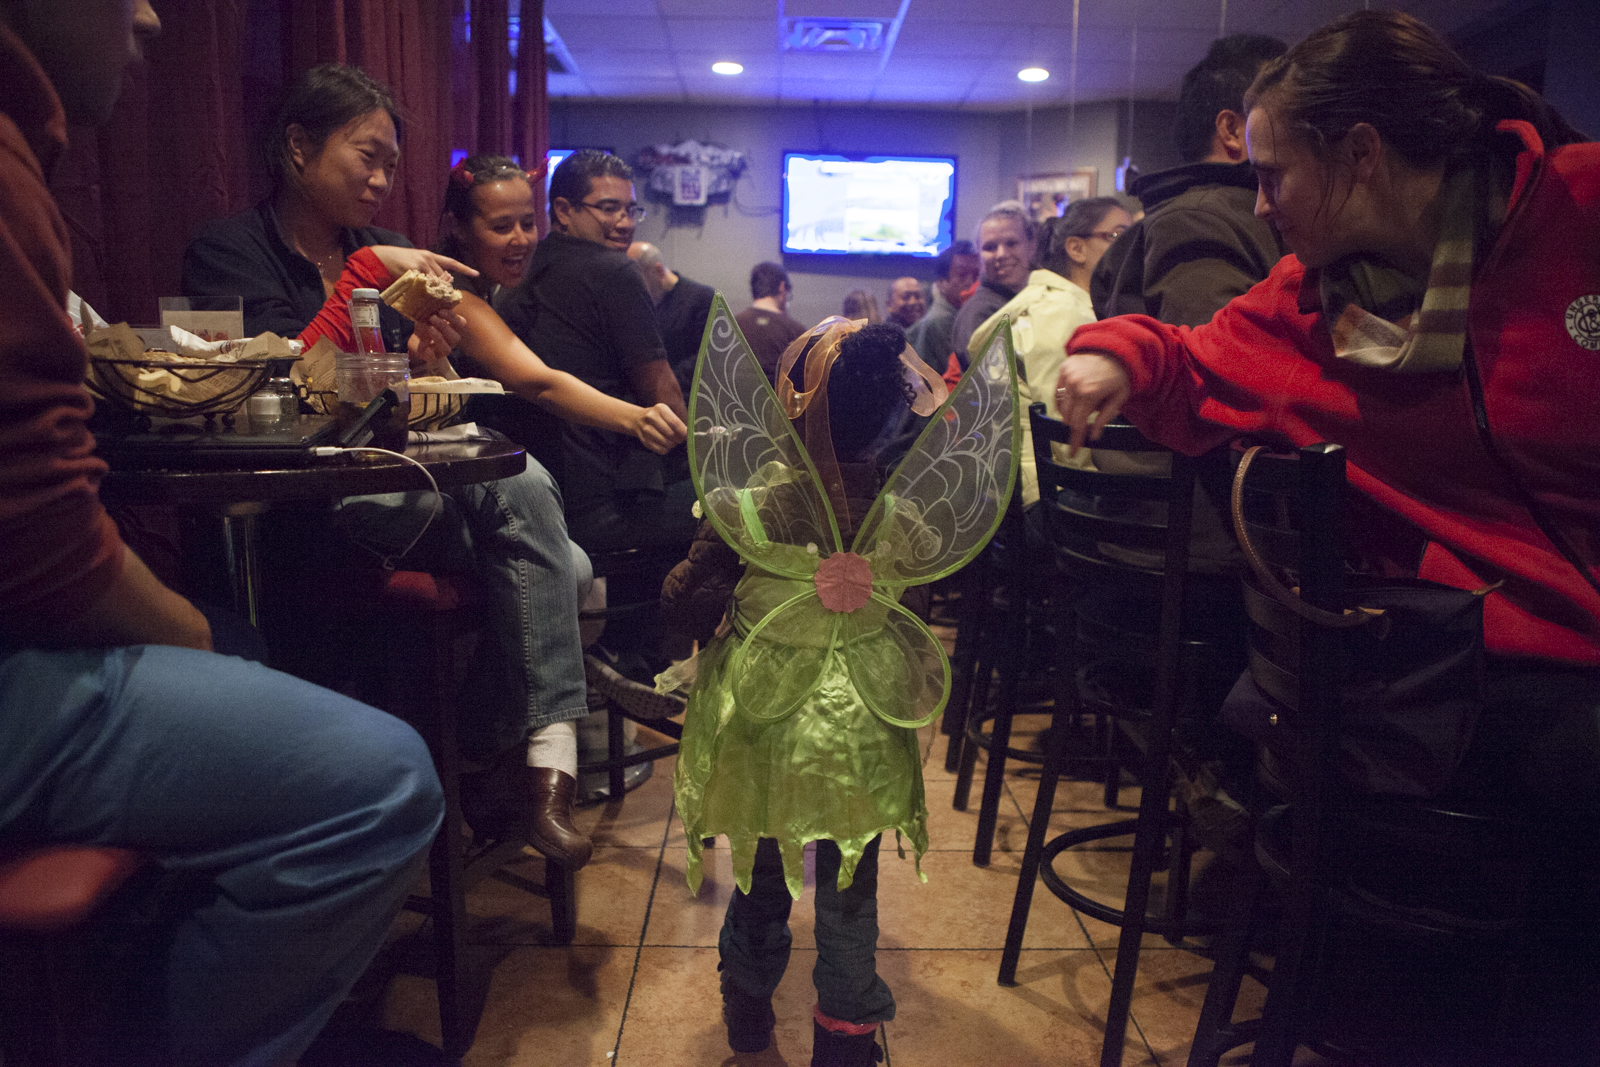 Asha enters a packed bar. Patrons offer her candy.